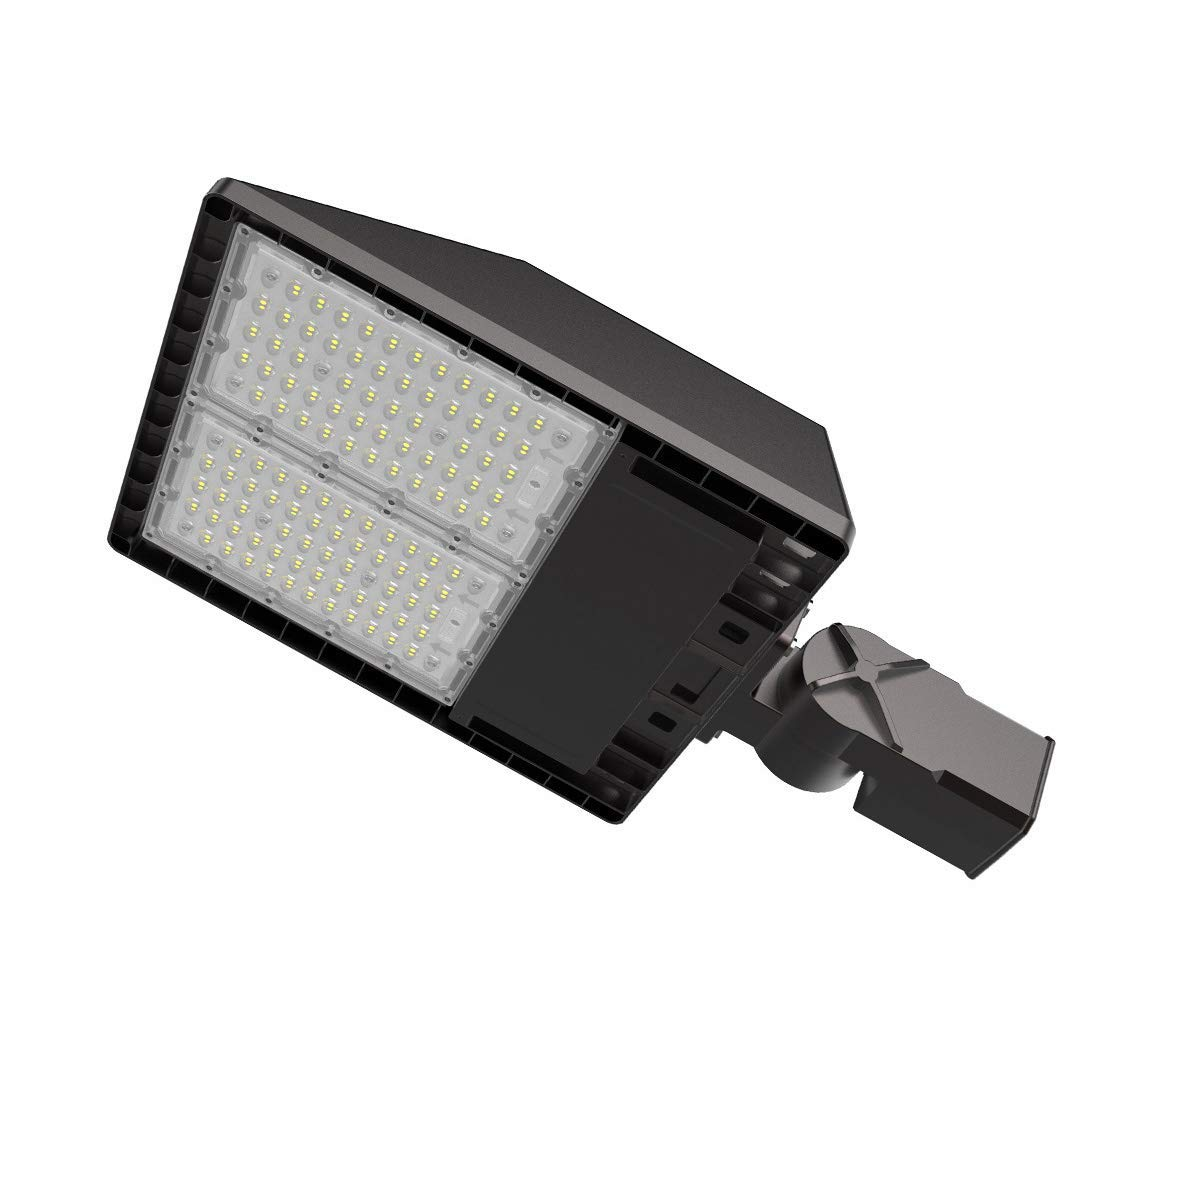 Adiding LED Street Shoebox Light with 3 Types of Mounting 200W Led Parking Lot Light 25000 Lumens 125 Lm/W, 5700K Outdoor Street Lamp with IP65 Rated UL DLC FCC 5 Years Warranty